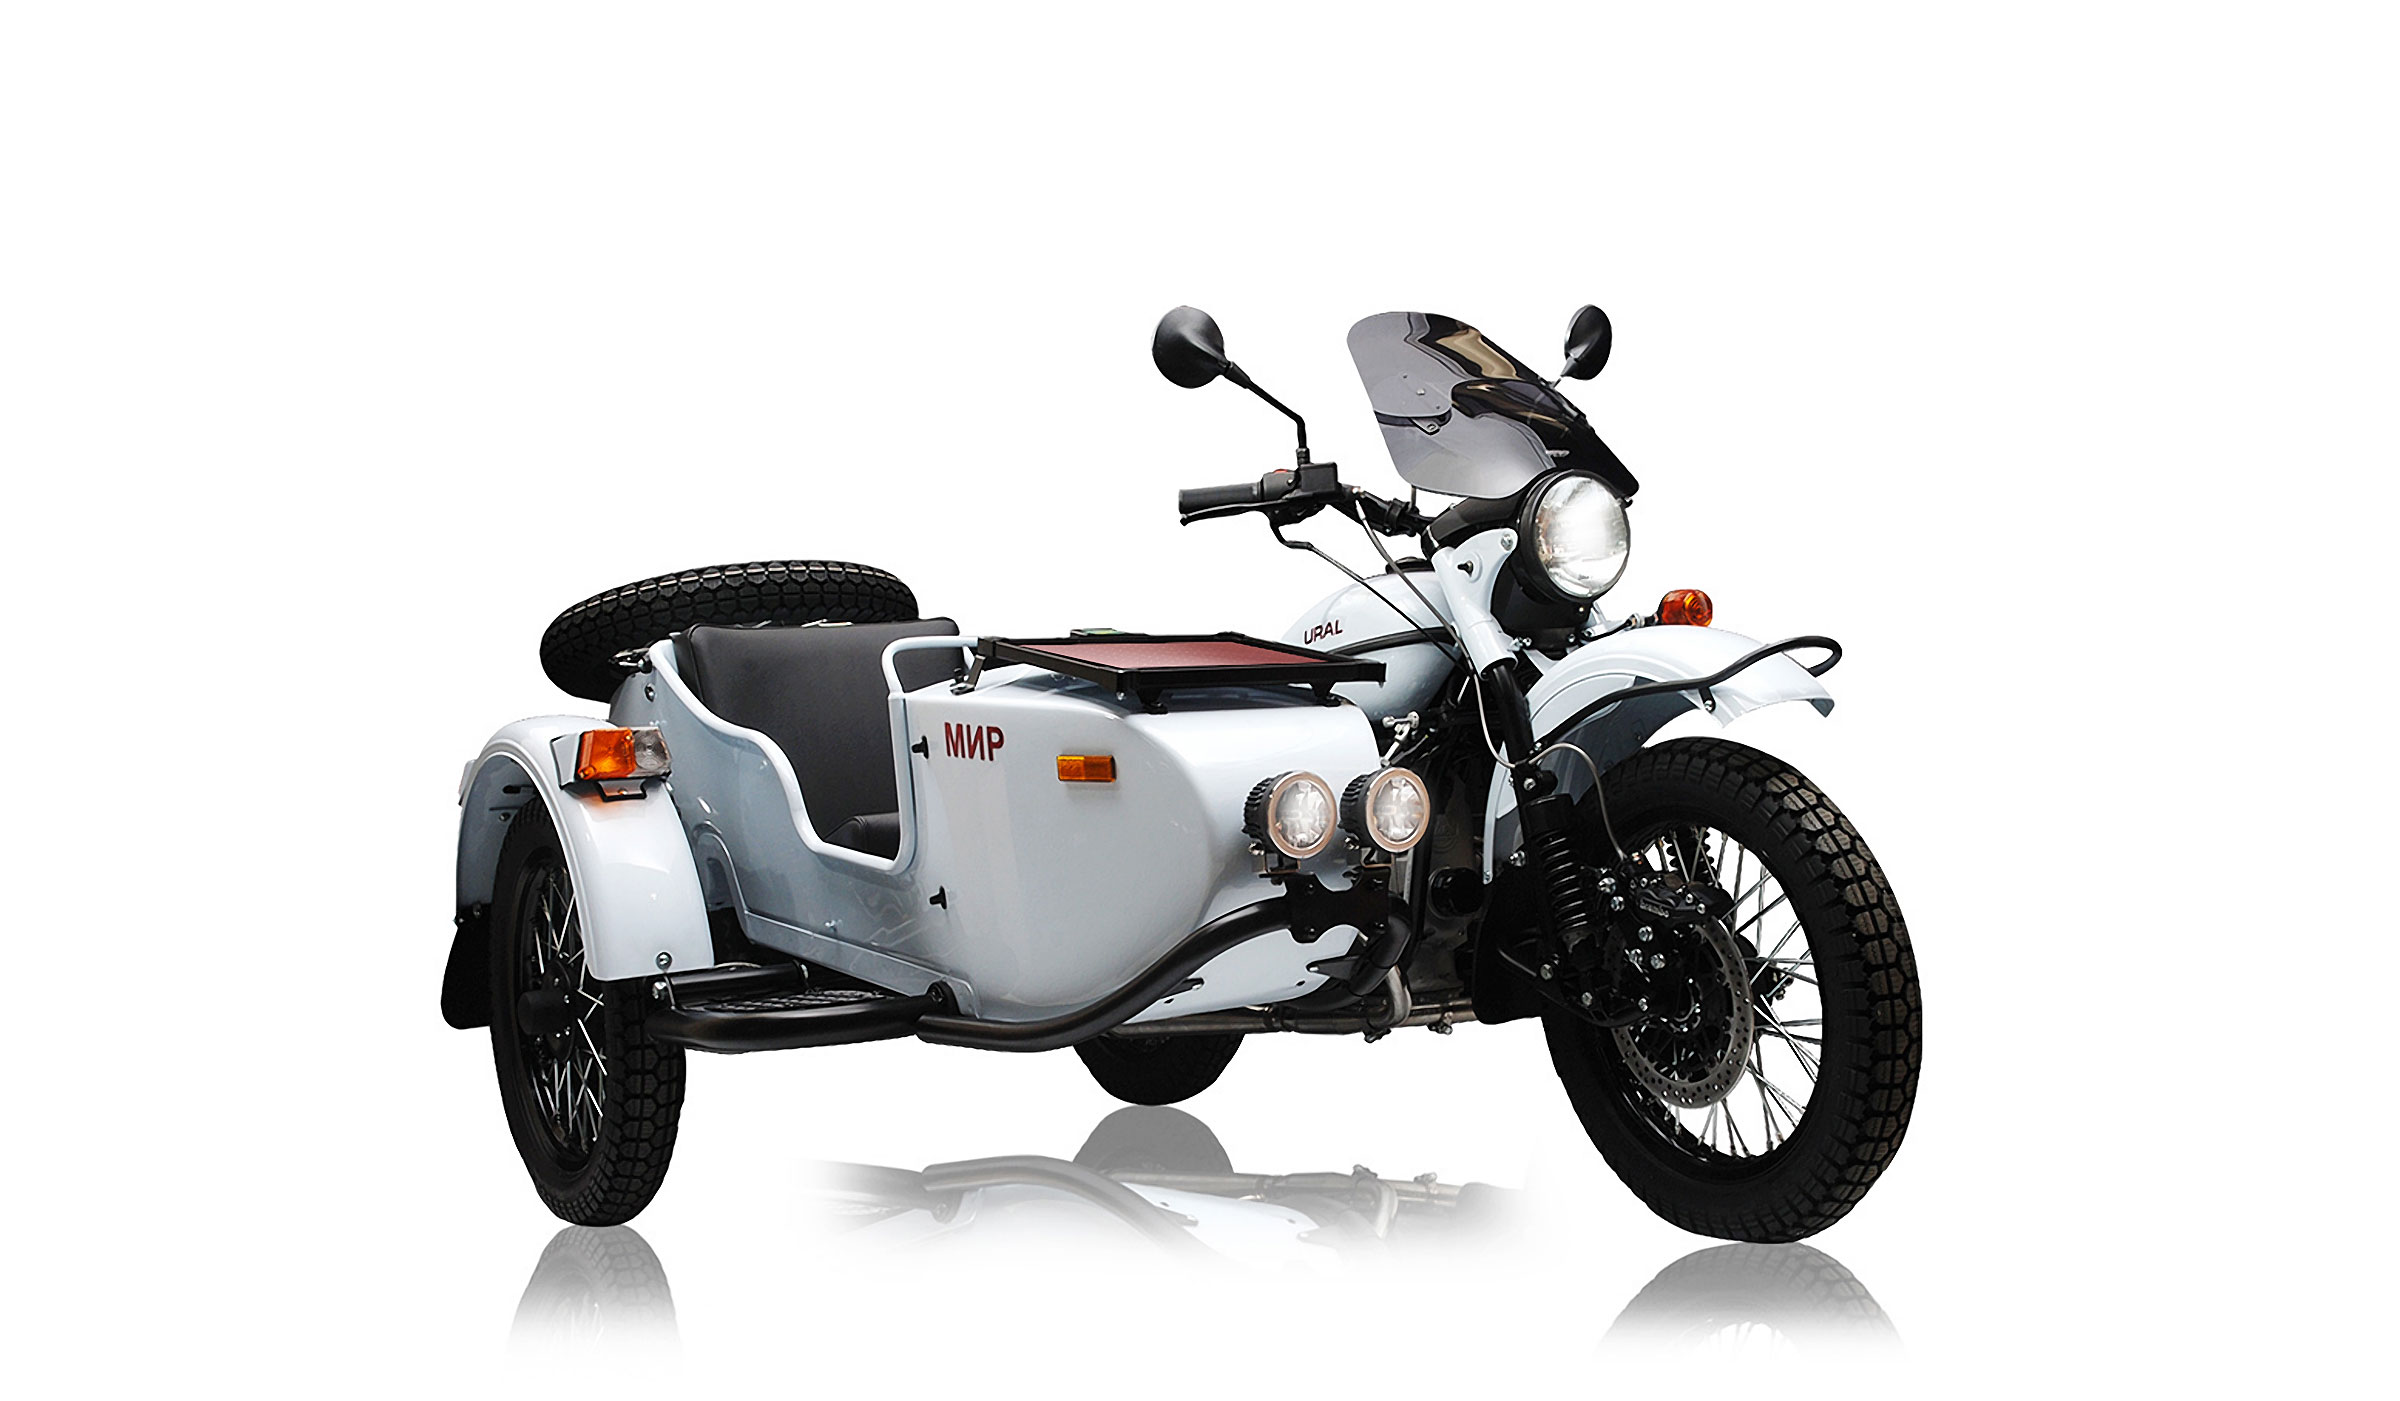 URAL MIR LIMITED EDITION